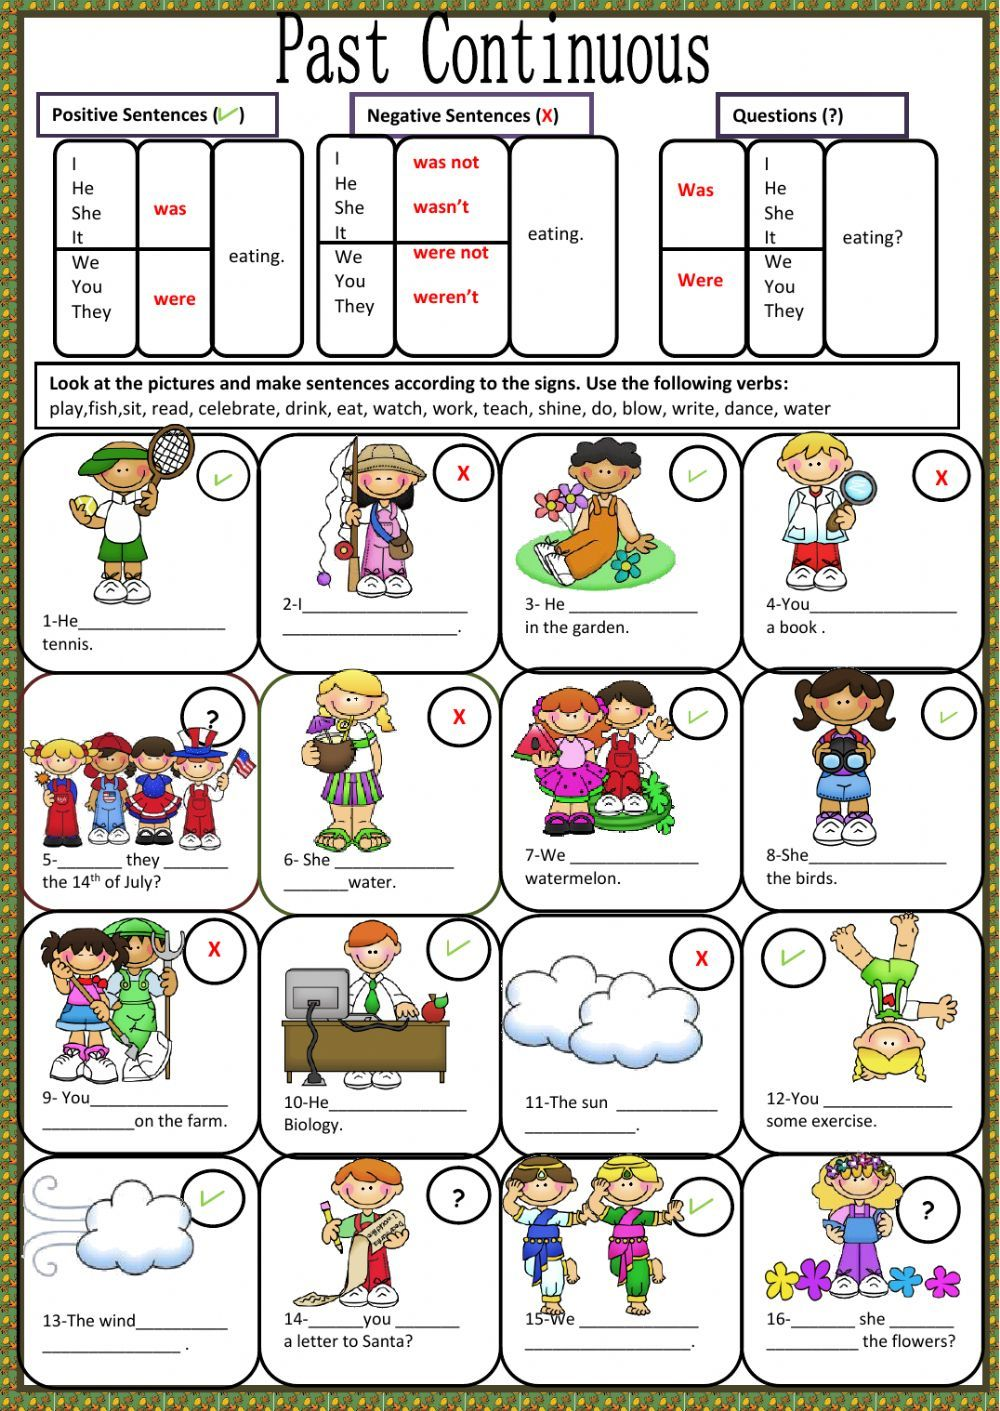 Past Continuous Interactive And Downloadable Worksheet You Can Do The Exercises Online Or Download The W English Grammar Quiz English Grammar Teaching English [ 1411 x 1000 Pixel ]